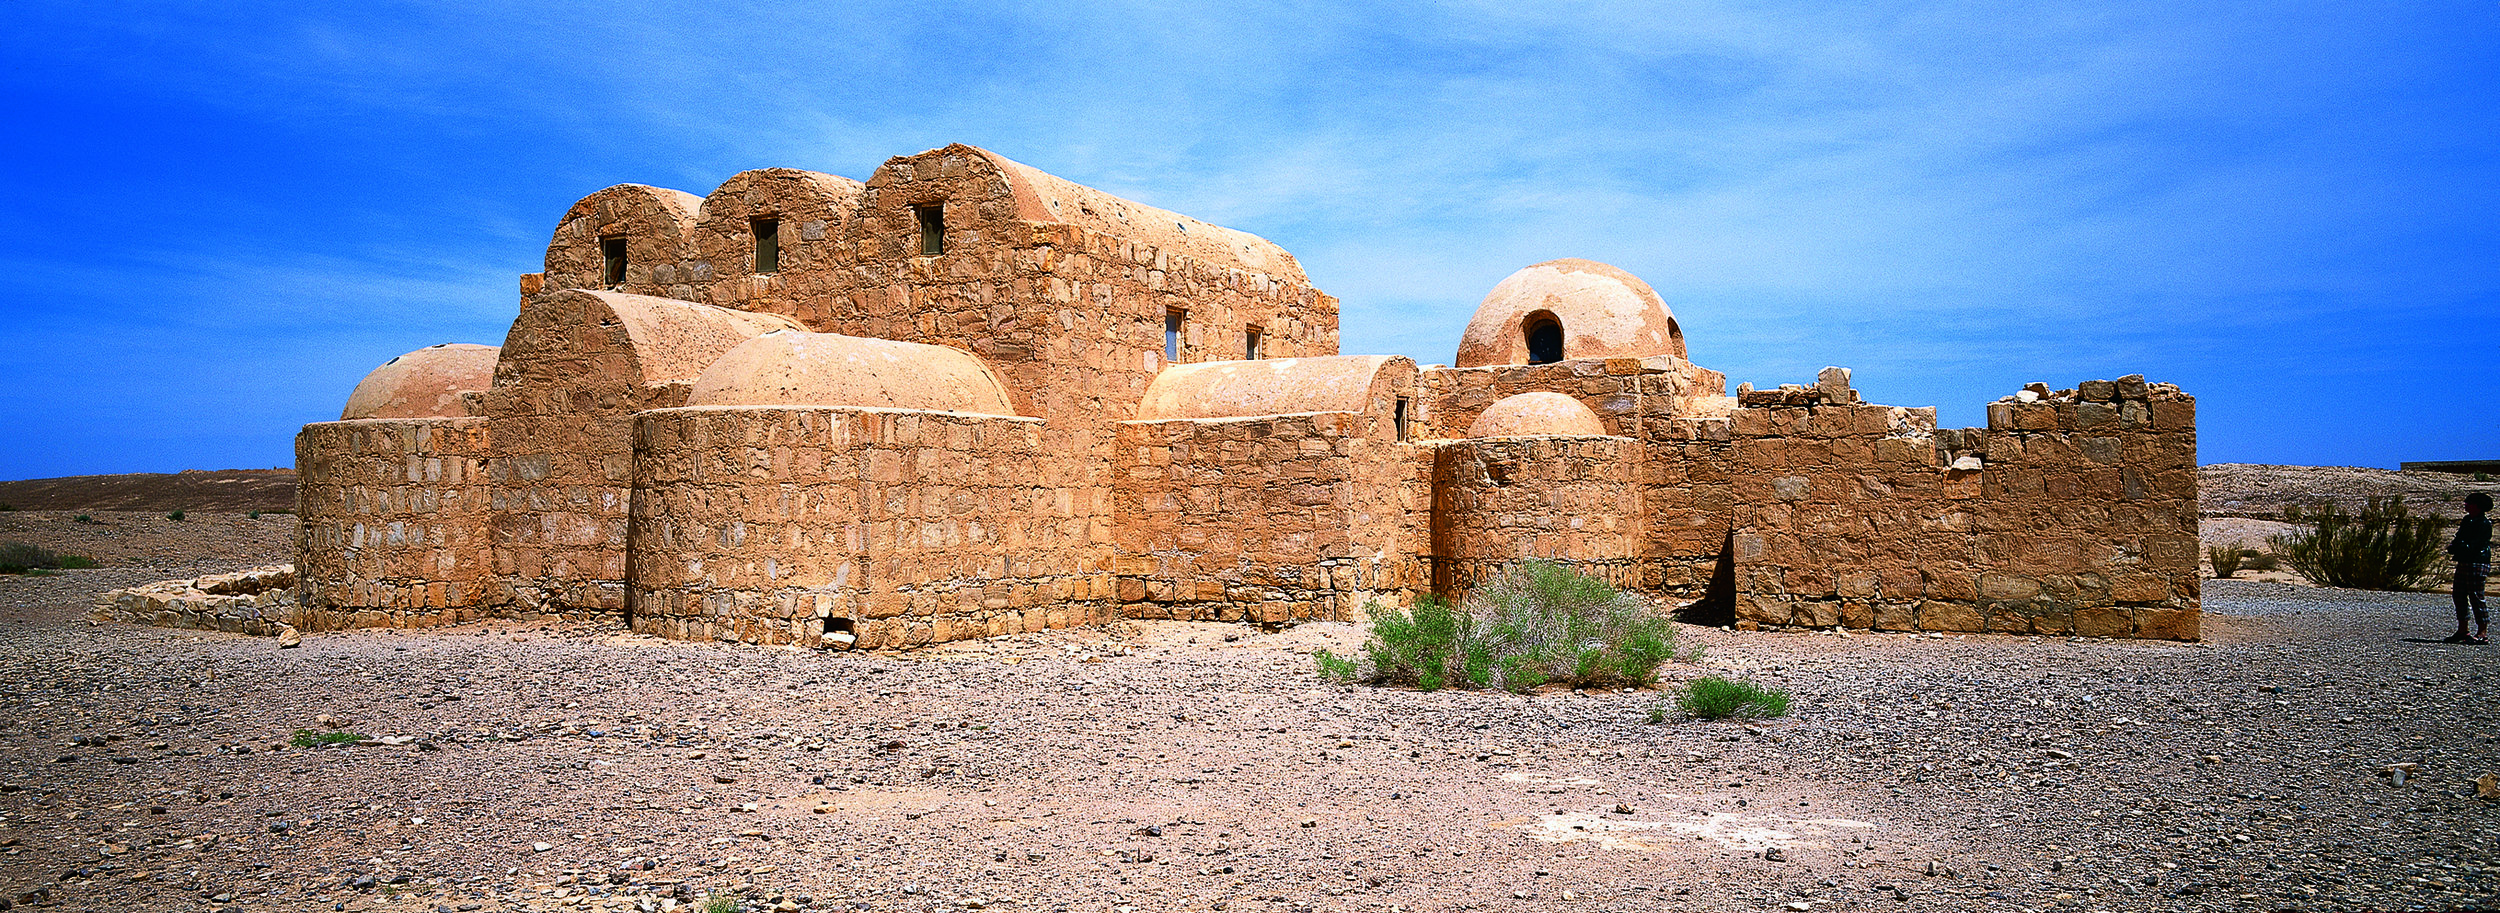 Quseir Amra. Photograph by JoTB, distribute under  CC BY-SA 3.0  license.